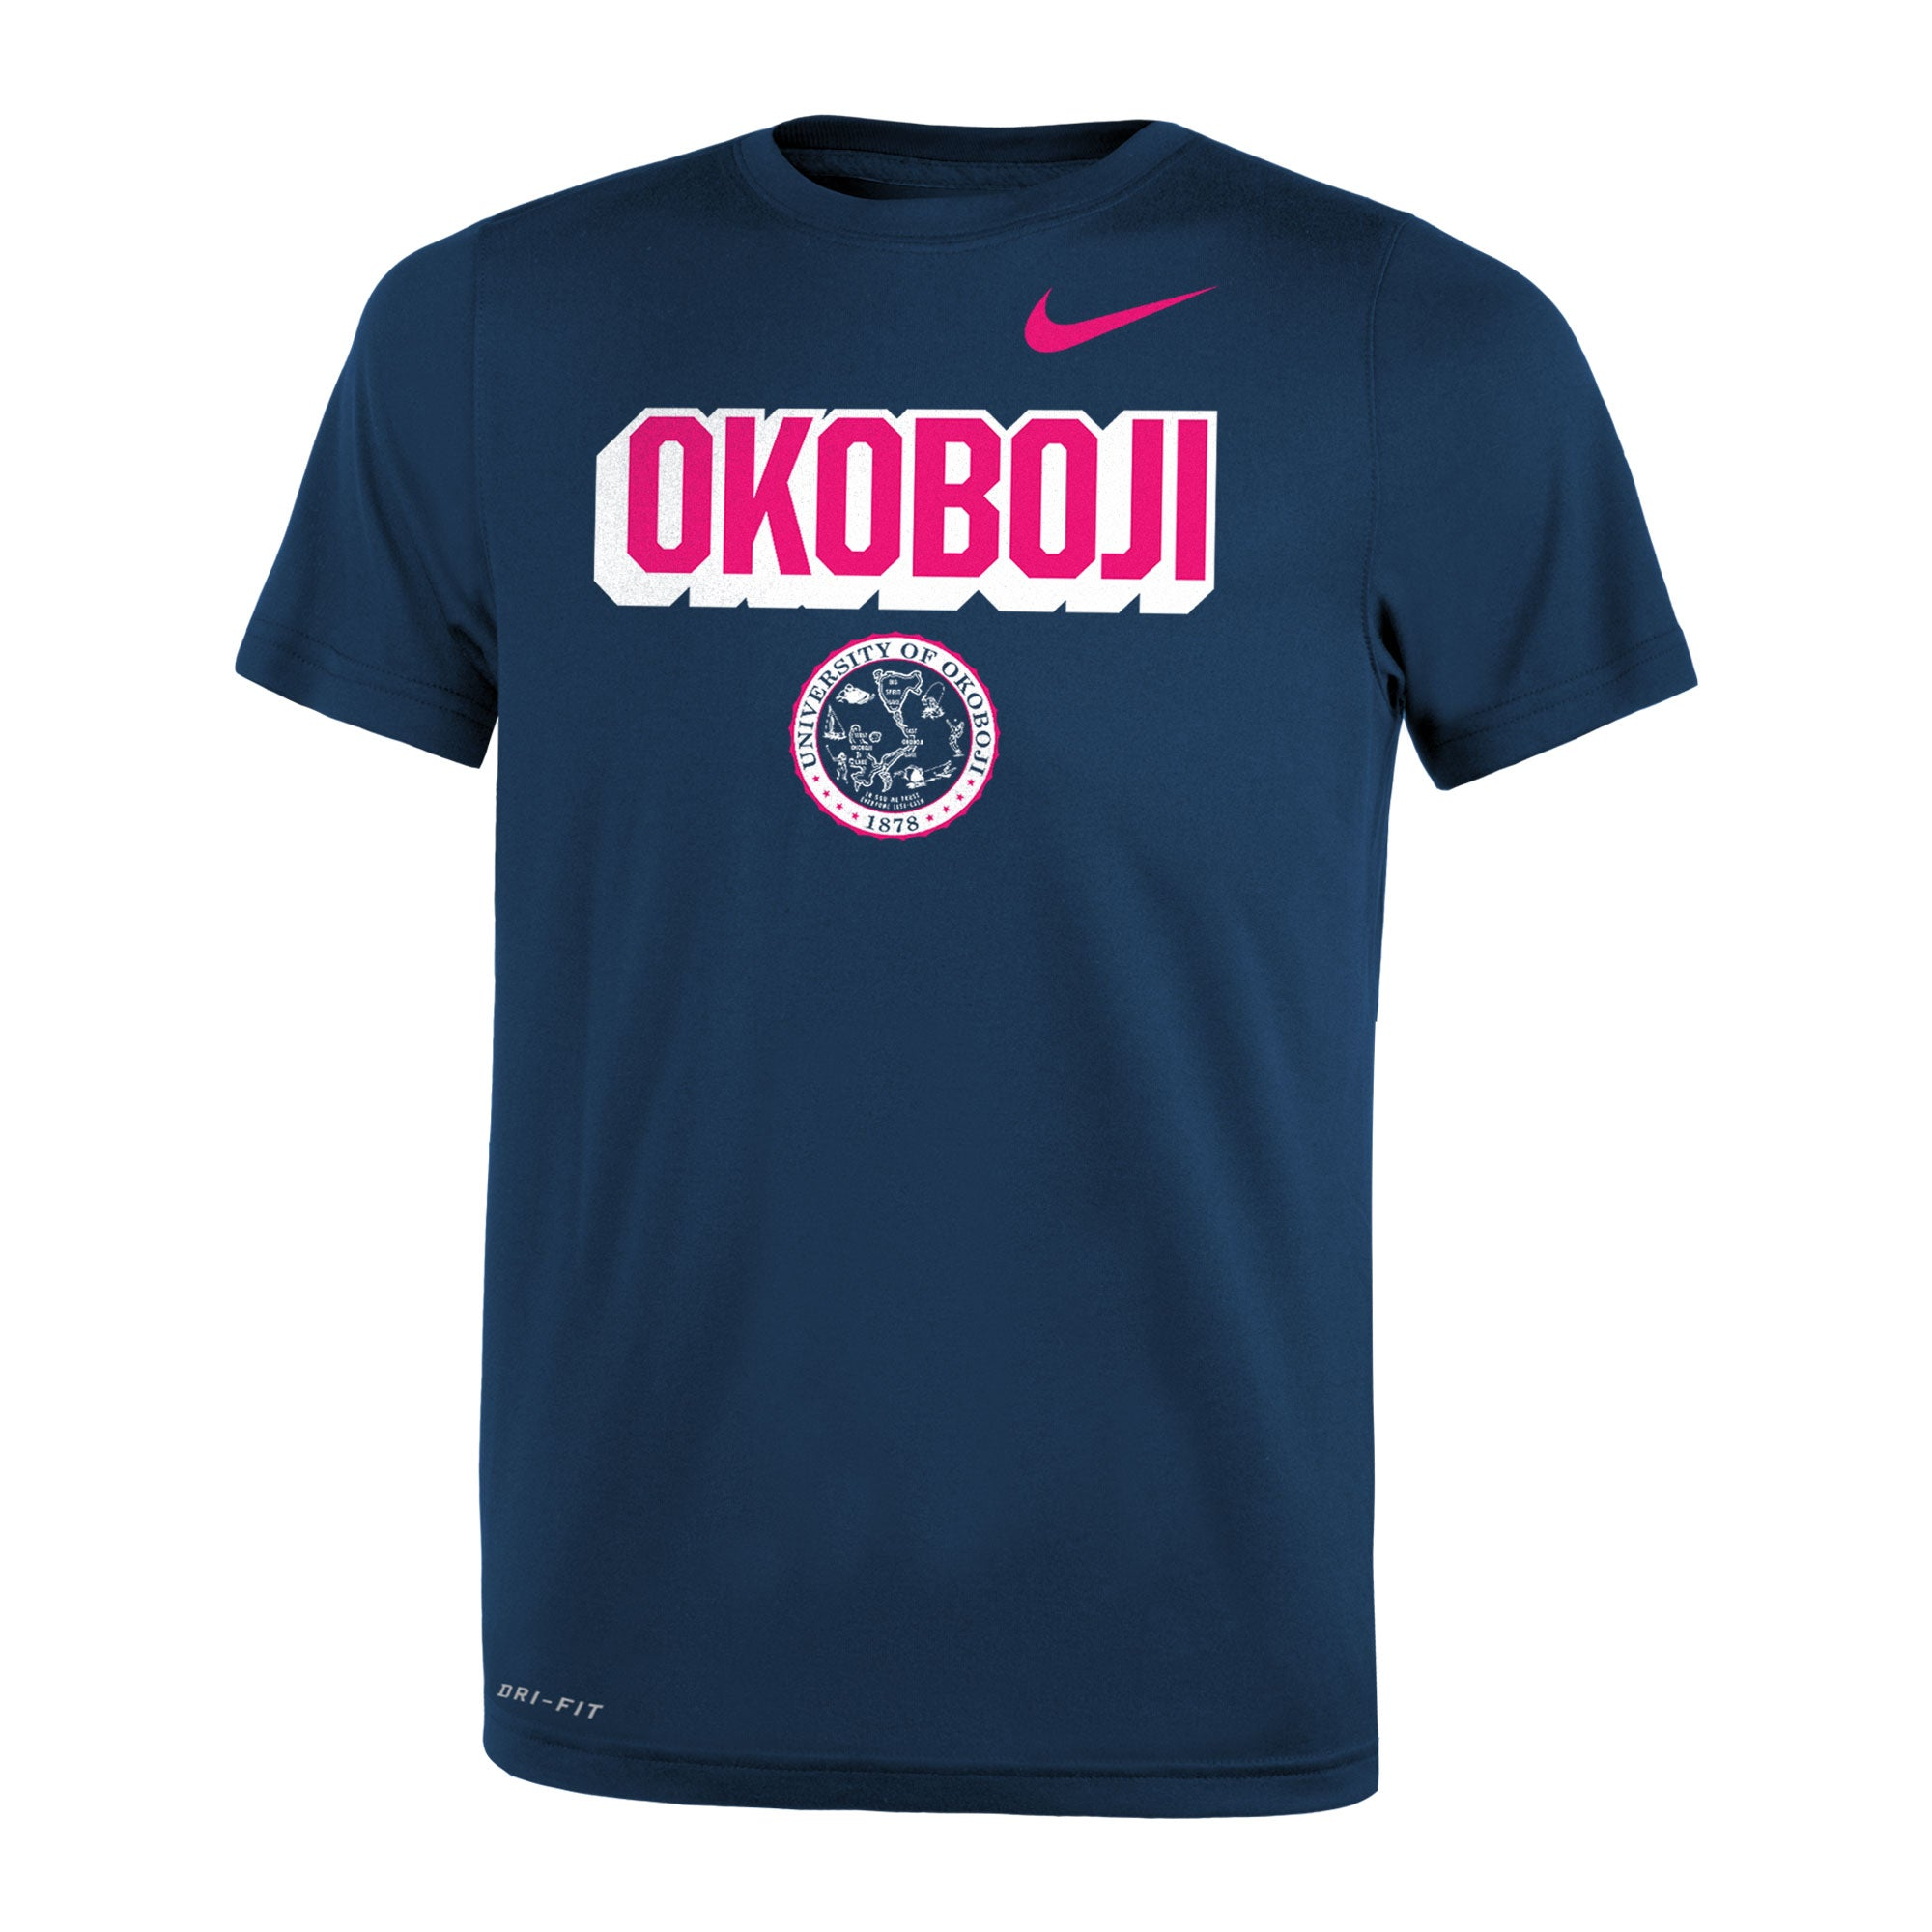 Girls NIKE Legend Short Sleeve Tee - Navy